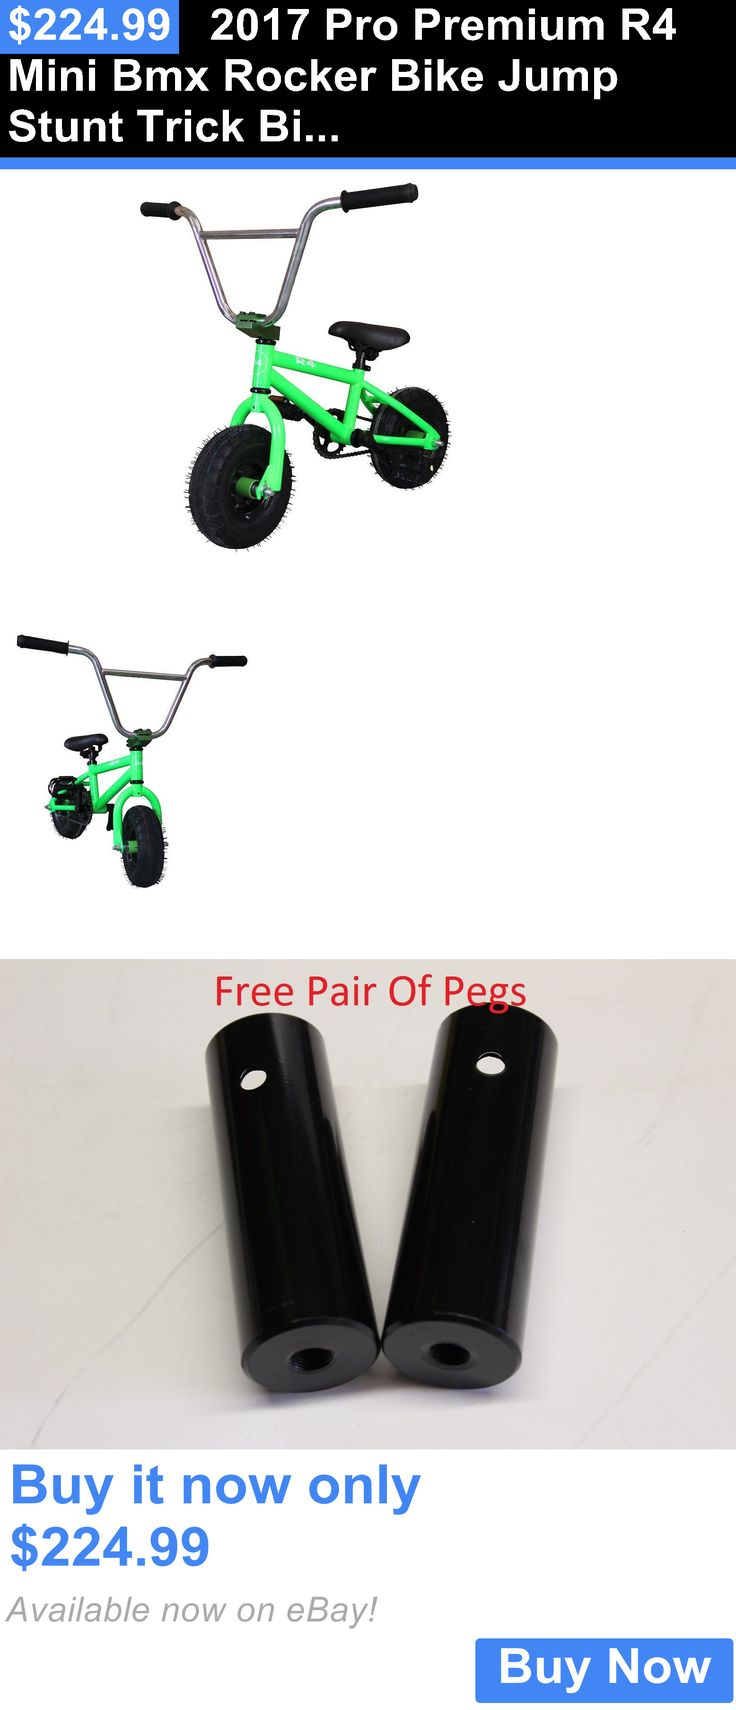 bicycles: 2017 Pro Premium R4 Mini Bmx Rocker Bike Jump Stunt Trick Bicycle, Monster Green BUY IT NOW ONLY: $224.99